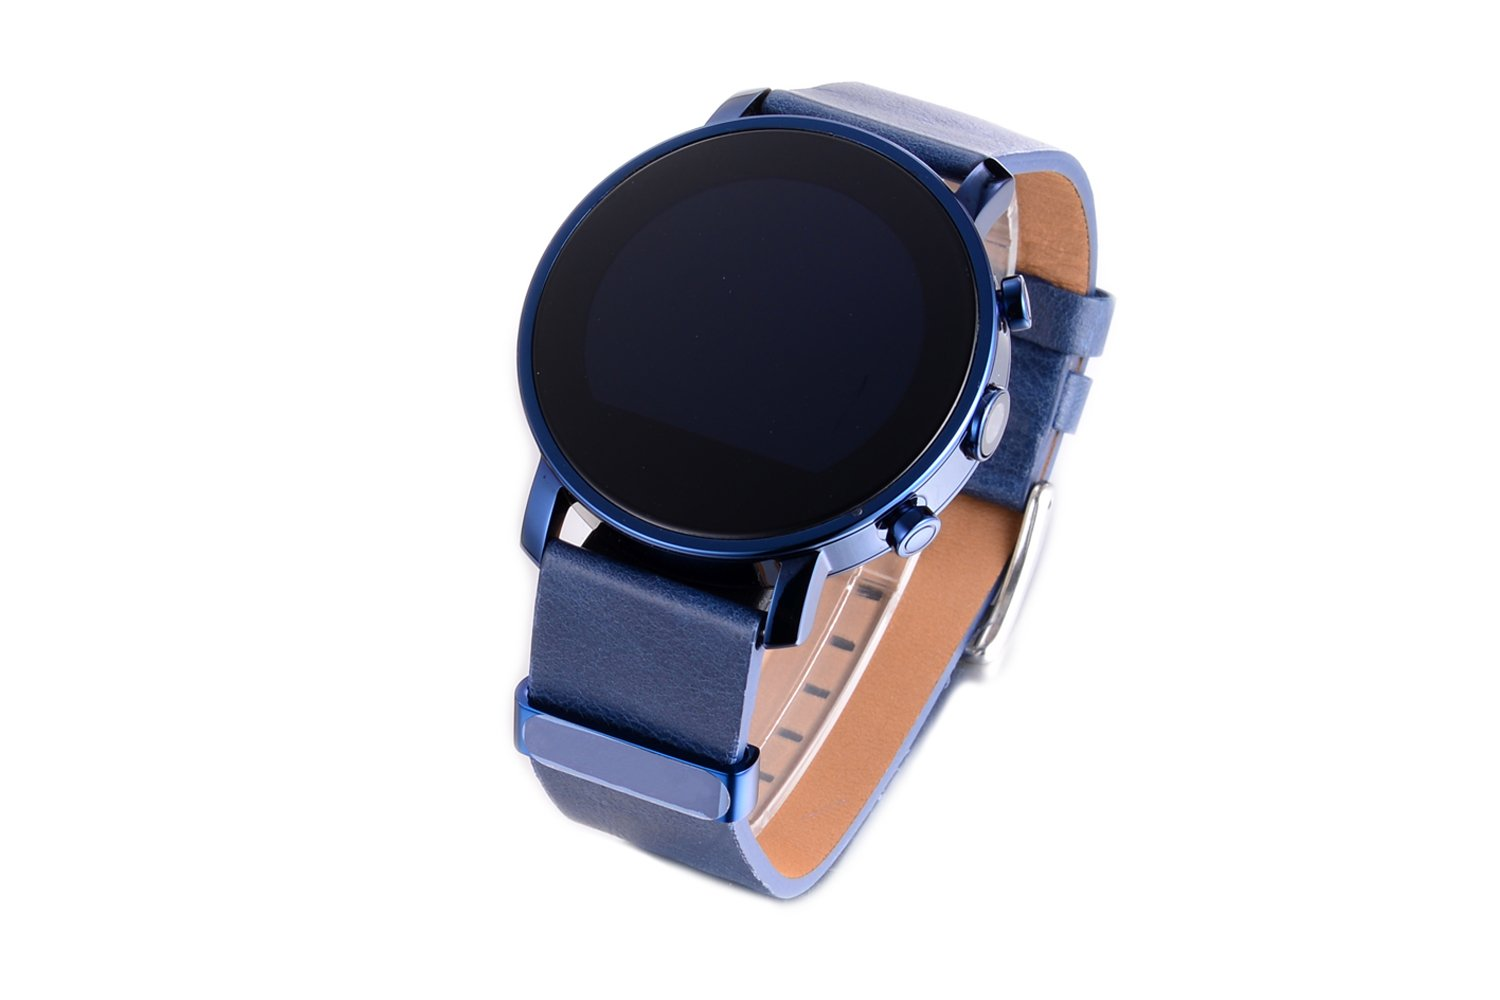 db5a65280 Amazon.com  Sanoxy Smartwatch Phone with SIM Card